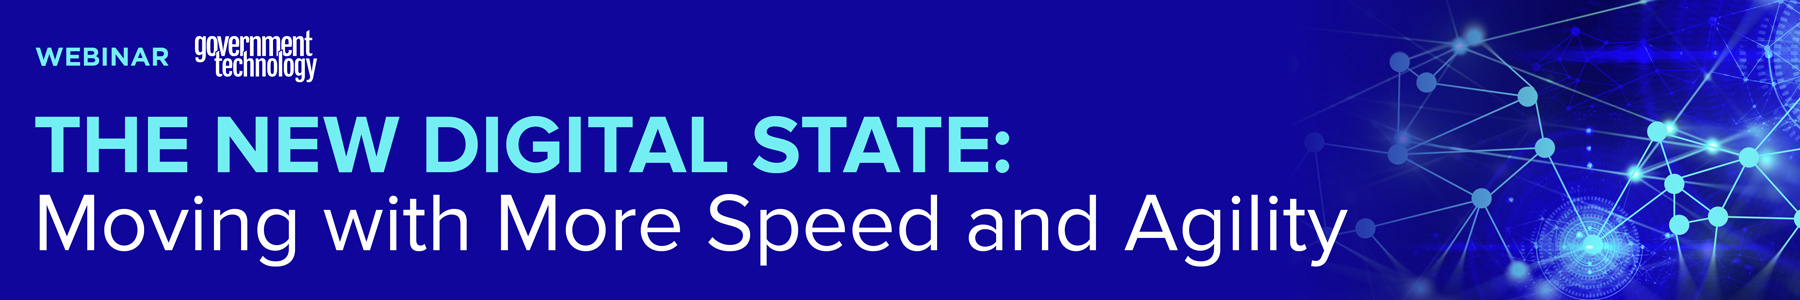 The New Digital State: Moving with More Speed and Agility